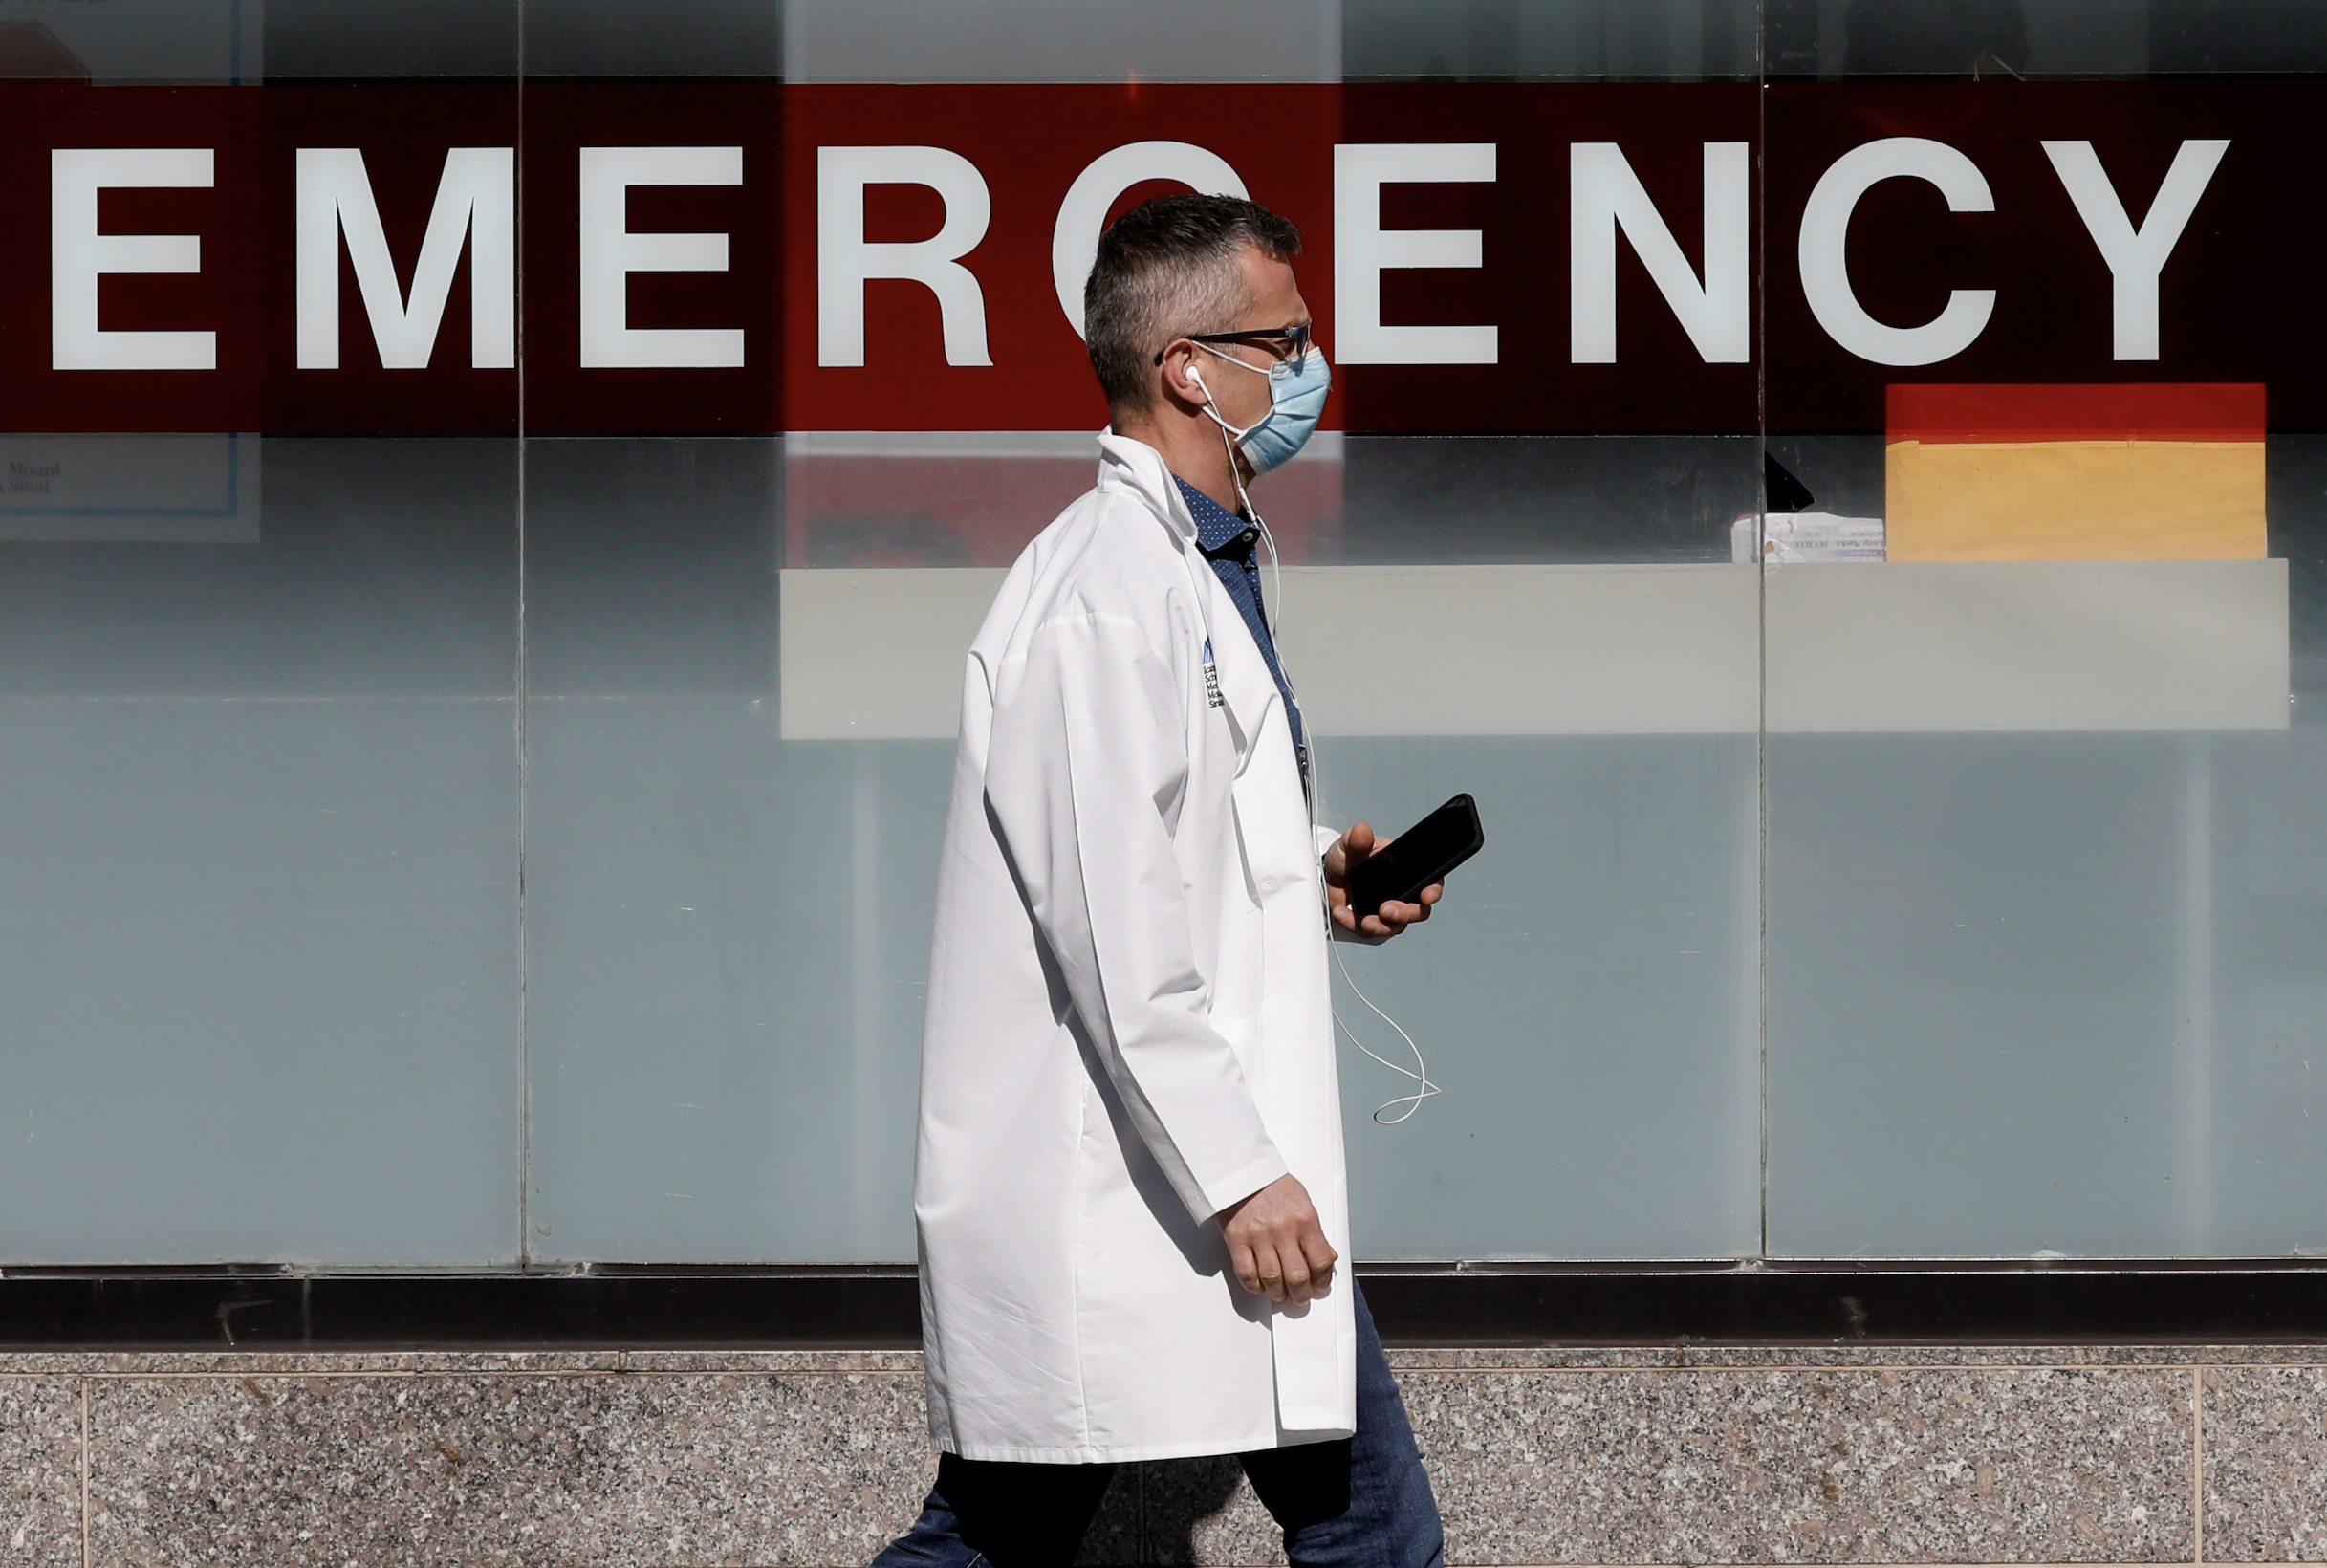 America's for-profit health system 'just does not work' in a pandemic